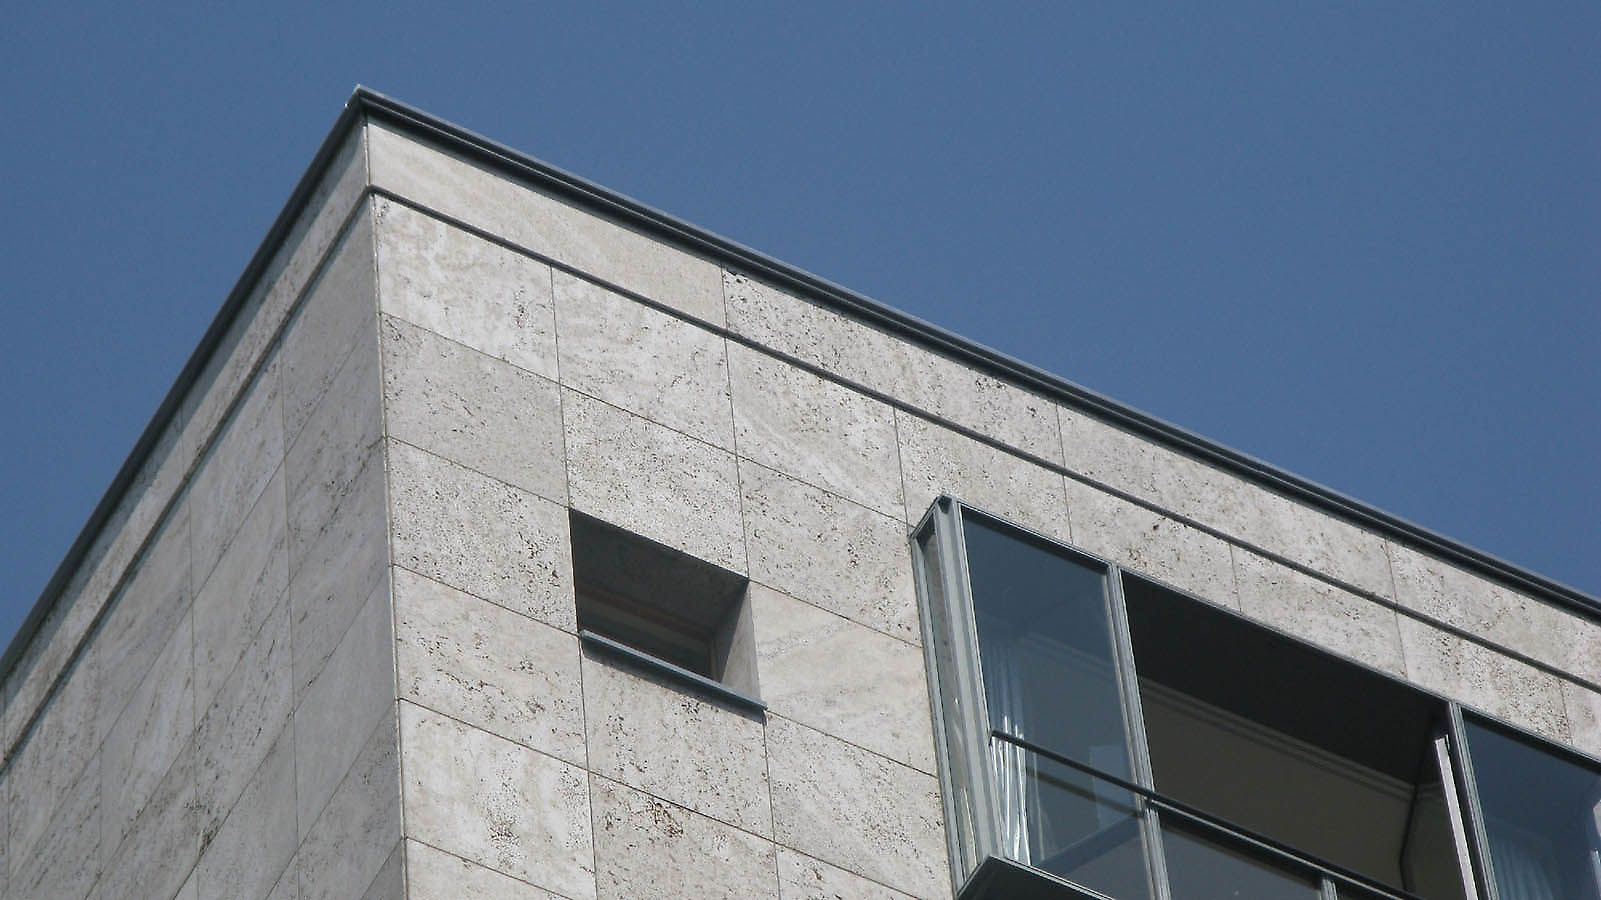 B ge kahlfeldt lindner b ge berlin clipper city home hotel - Houses natural stone facades ...